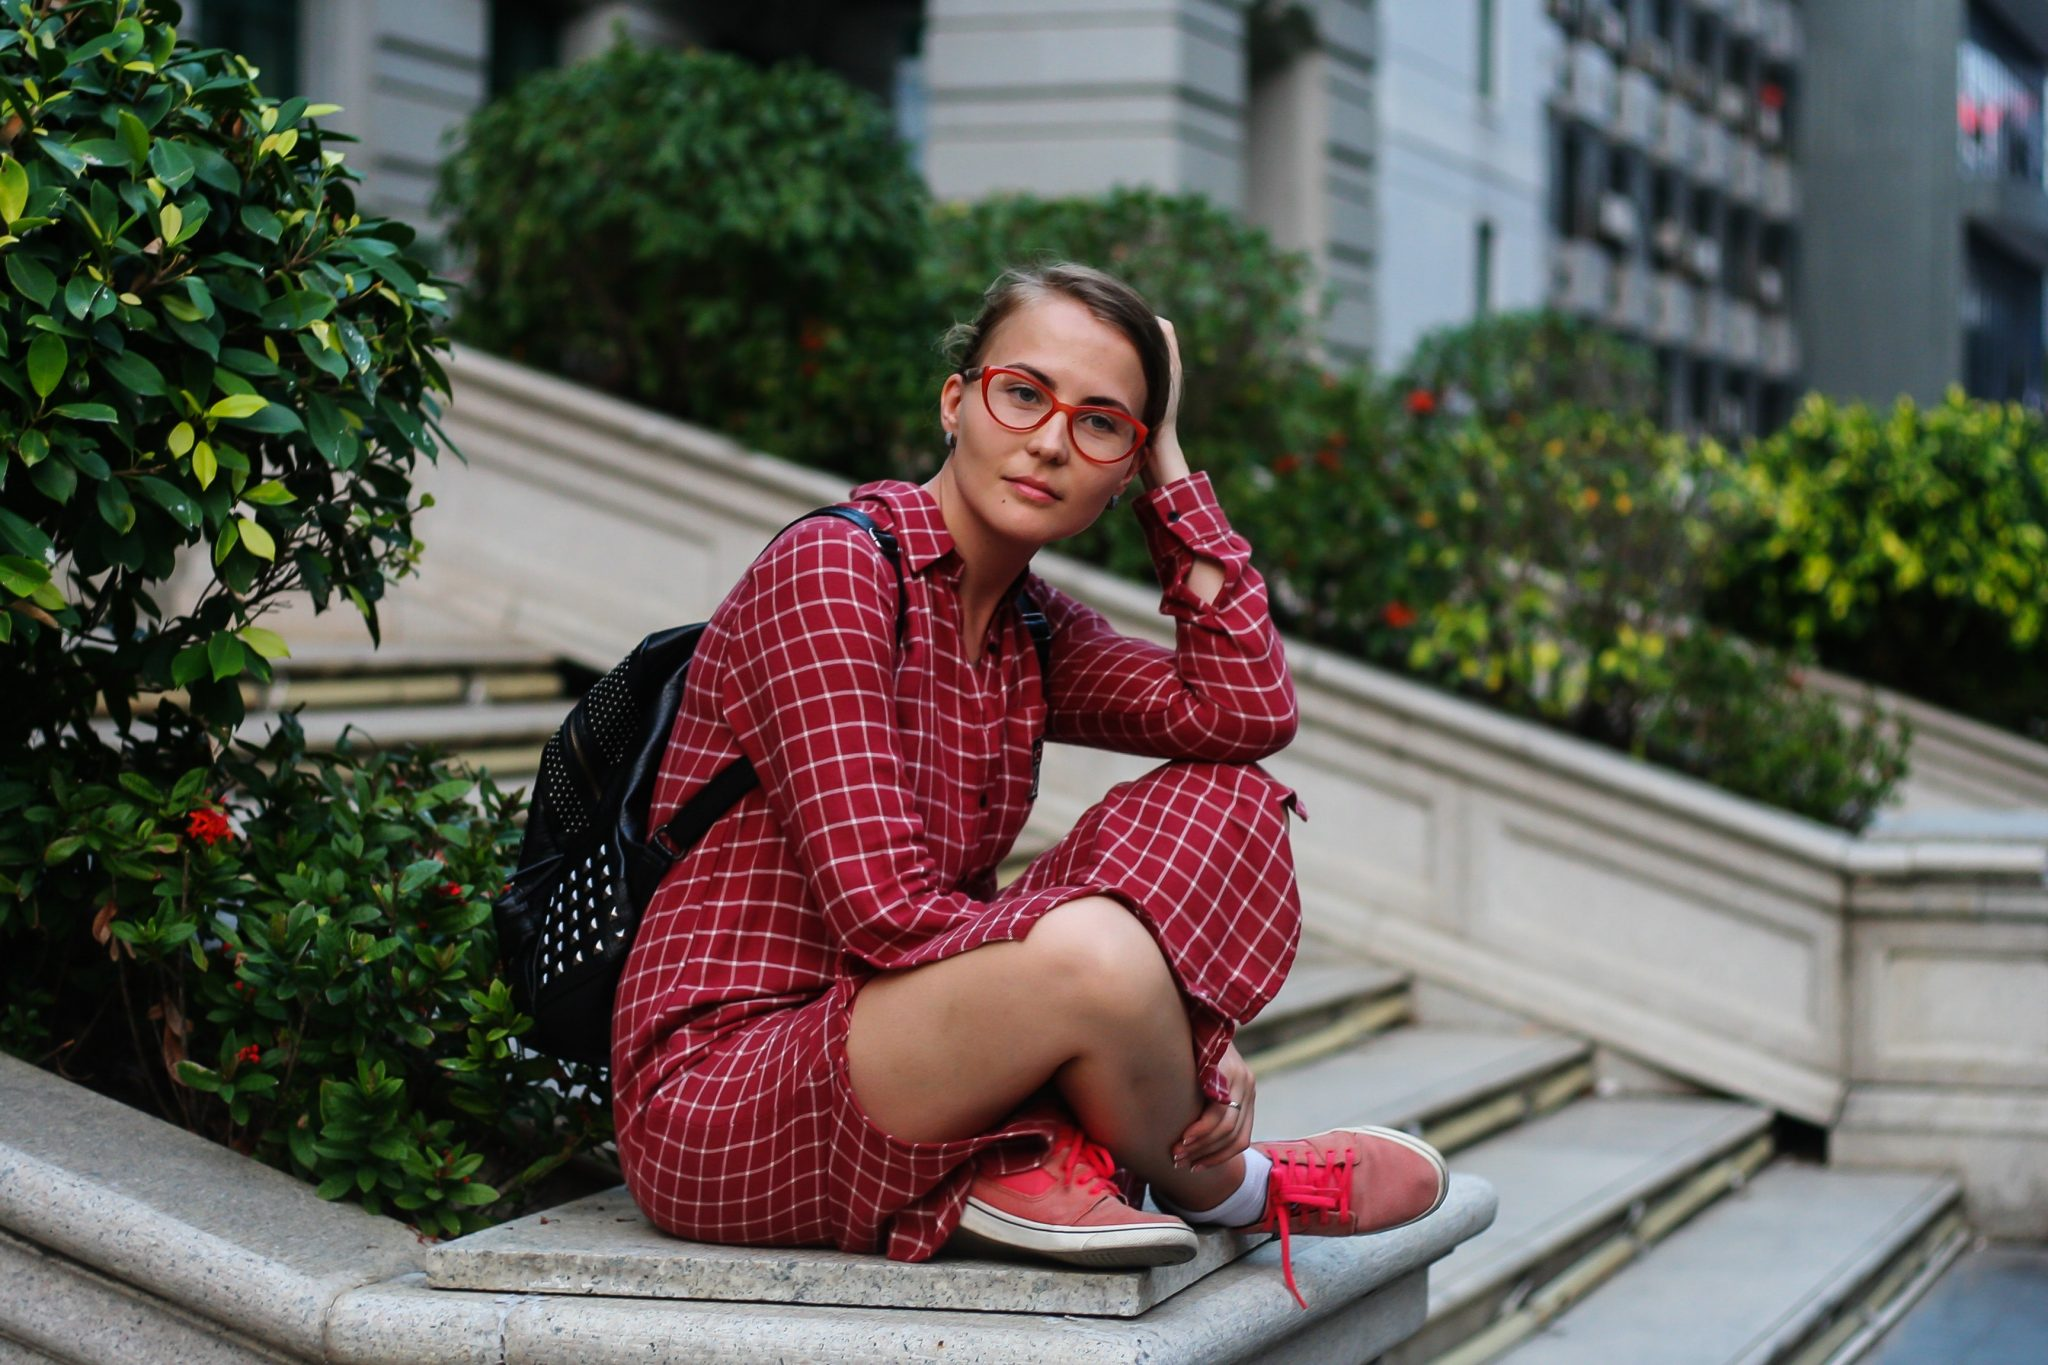 womens fashion, womens red outfit, red plaid outfit, photoshoot extras